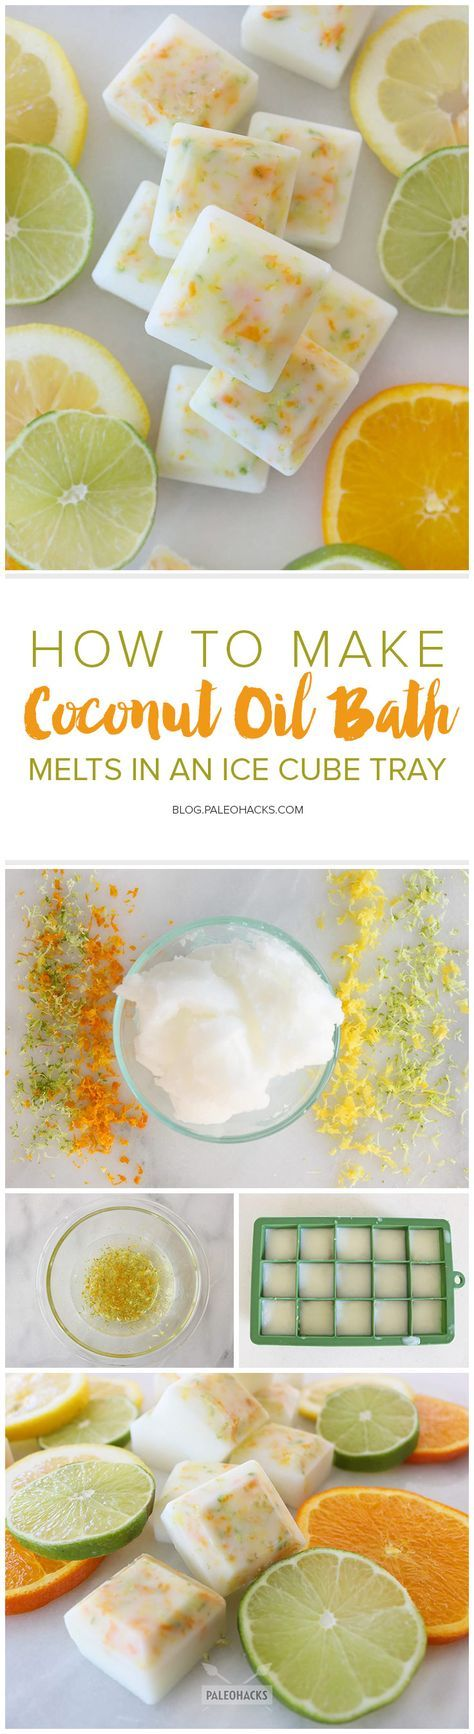 Beauty-pin-How-to-Make-Coconut-Oil-Bath-Melts-in-an-Ice-Cube-Tray.jpg